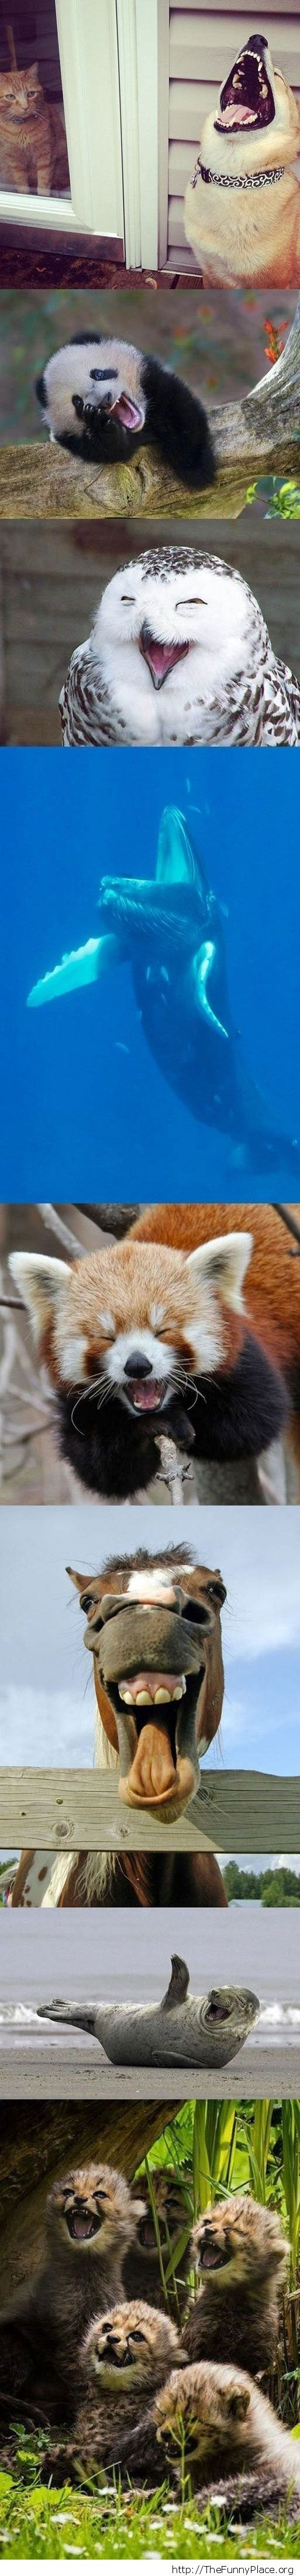 Cute animals yawning